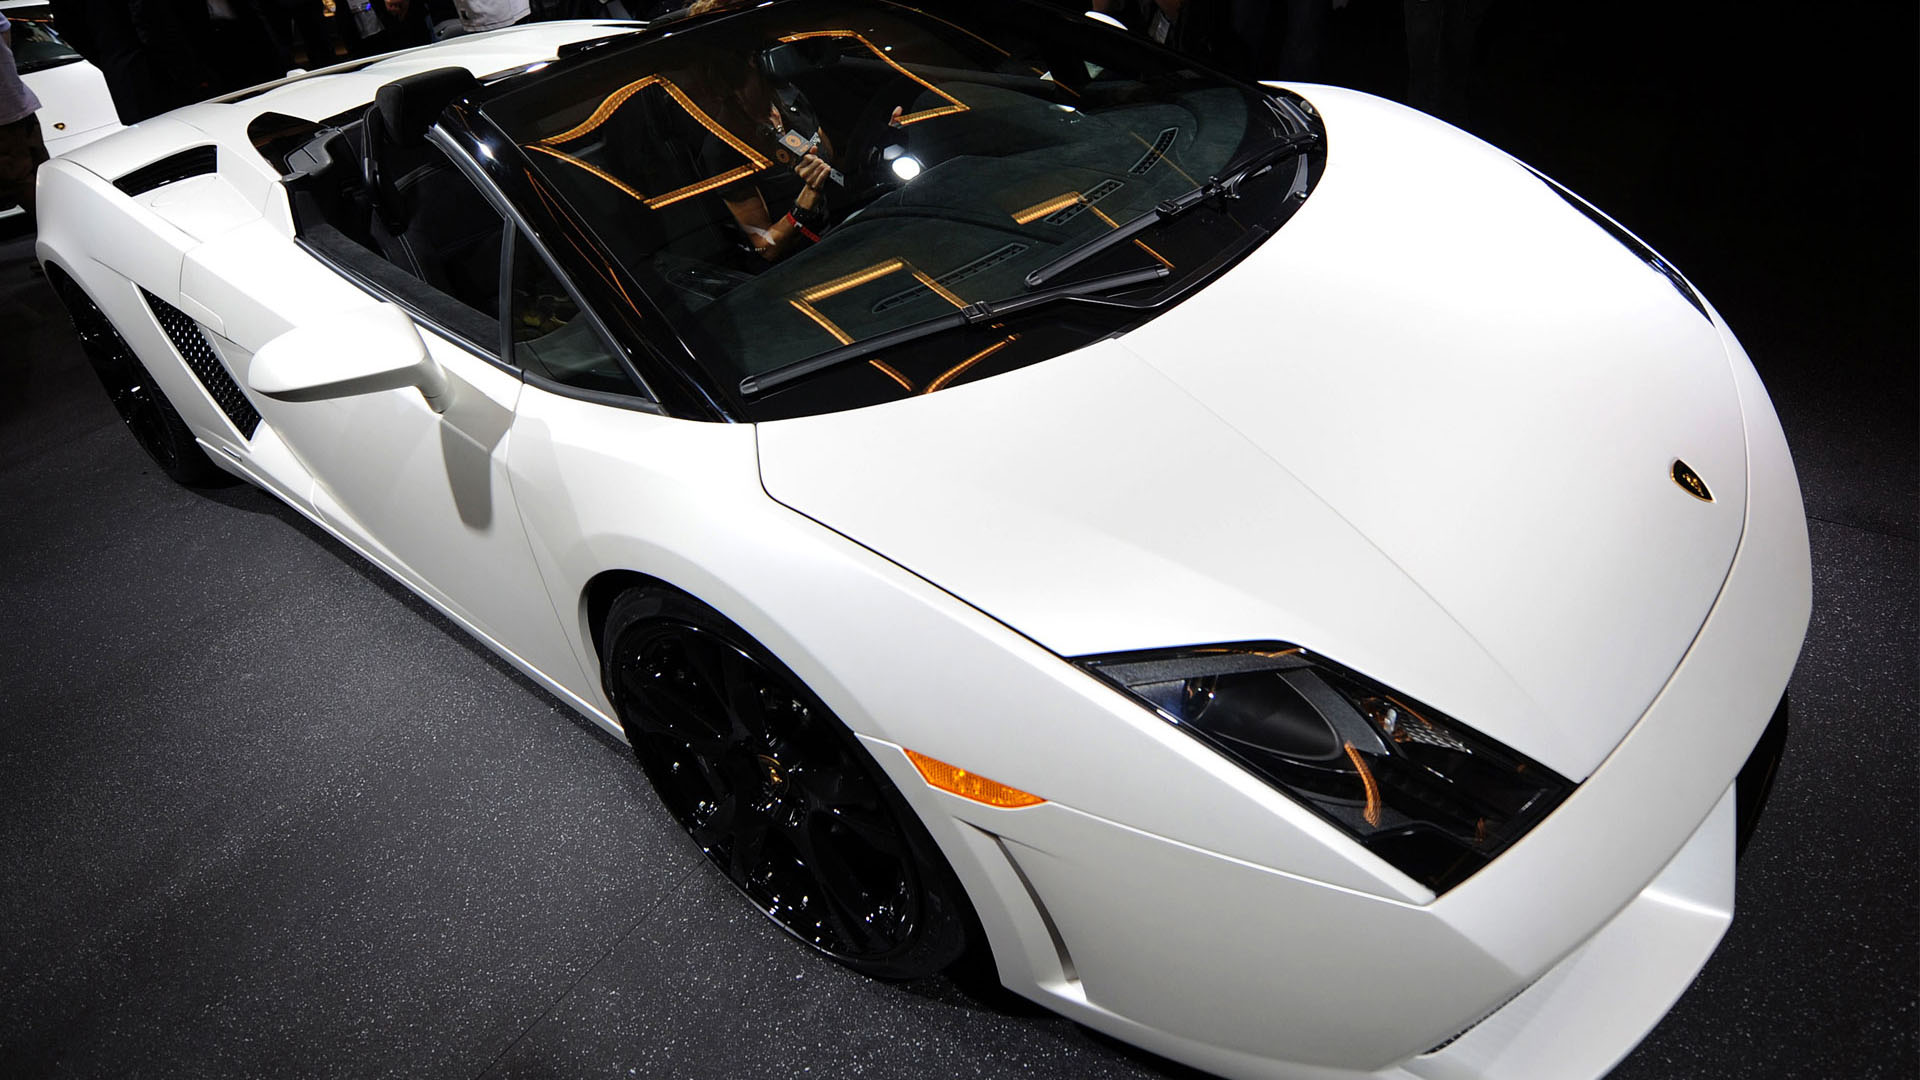 White Lamborghini Sports Car Image HD